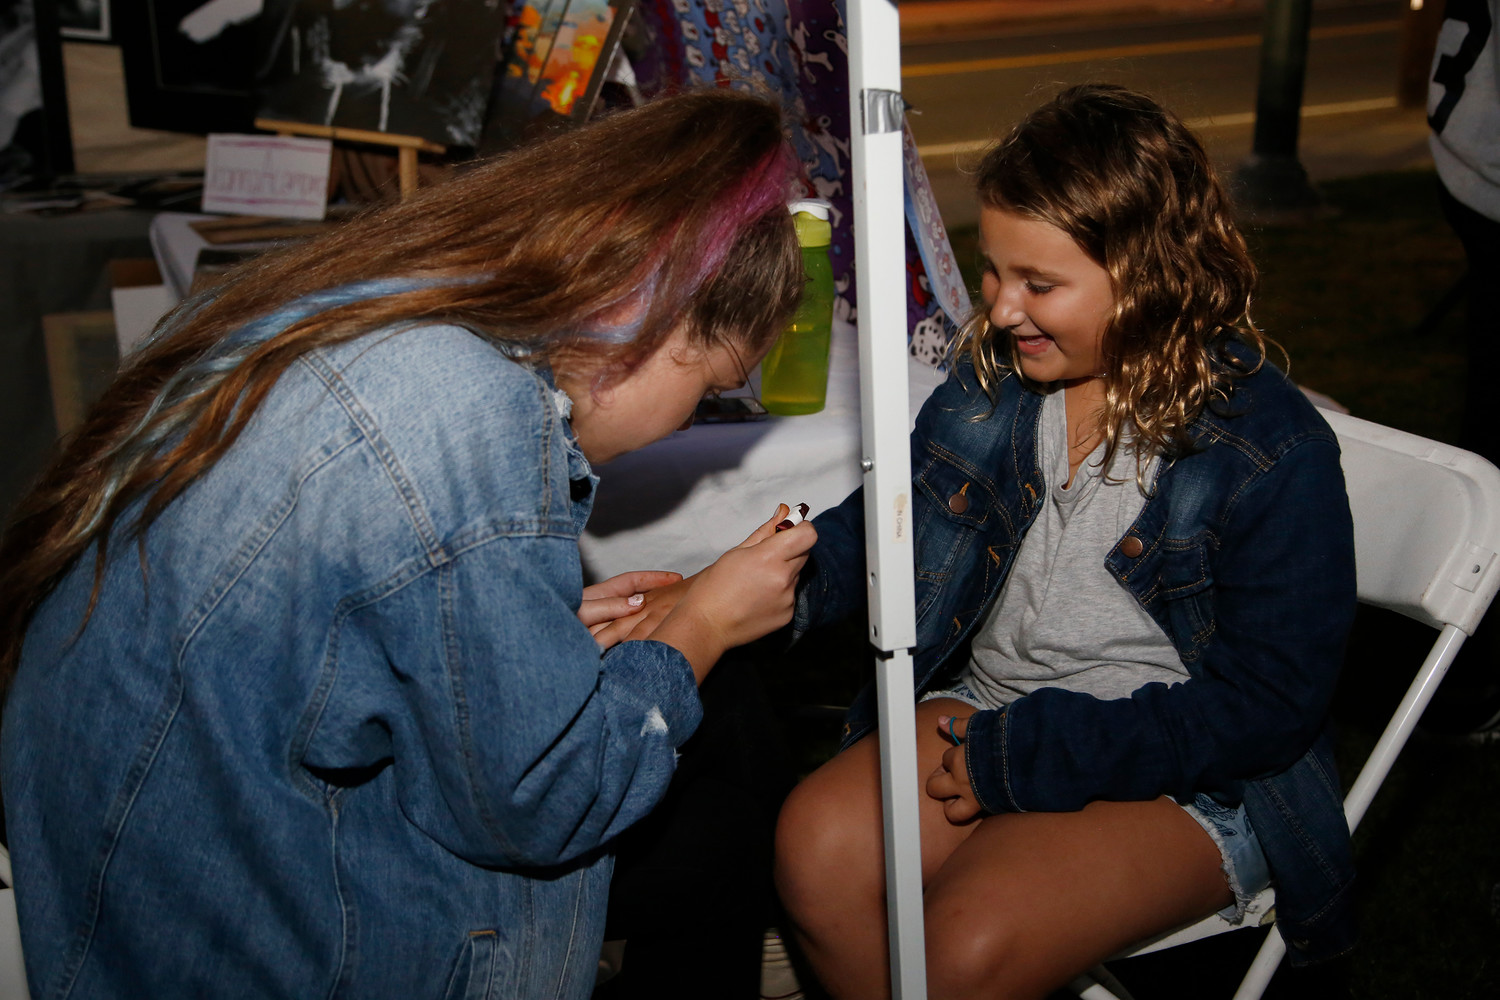 East Rockaway Junior-Senior High School senior Joanna Acampora gave Jenna Quaranto, 8, a tattoo.